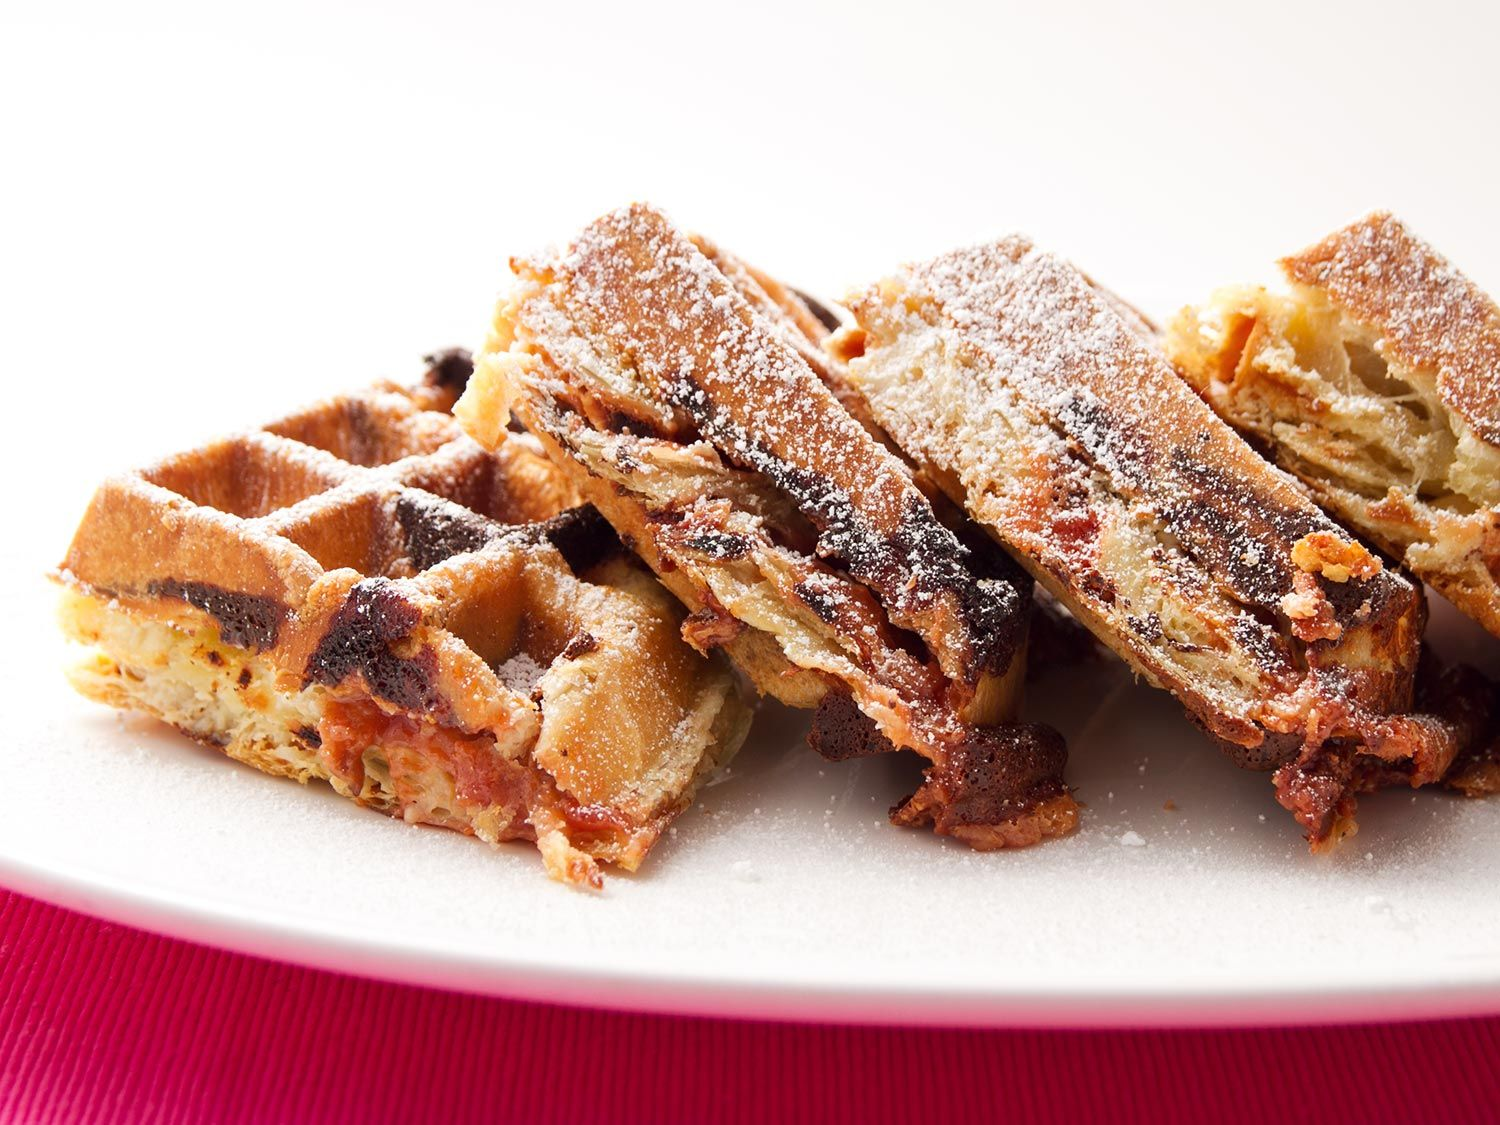 19 Pancakes, Waffles, Muffins, and More Sweet Breakfast Recipes